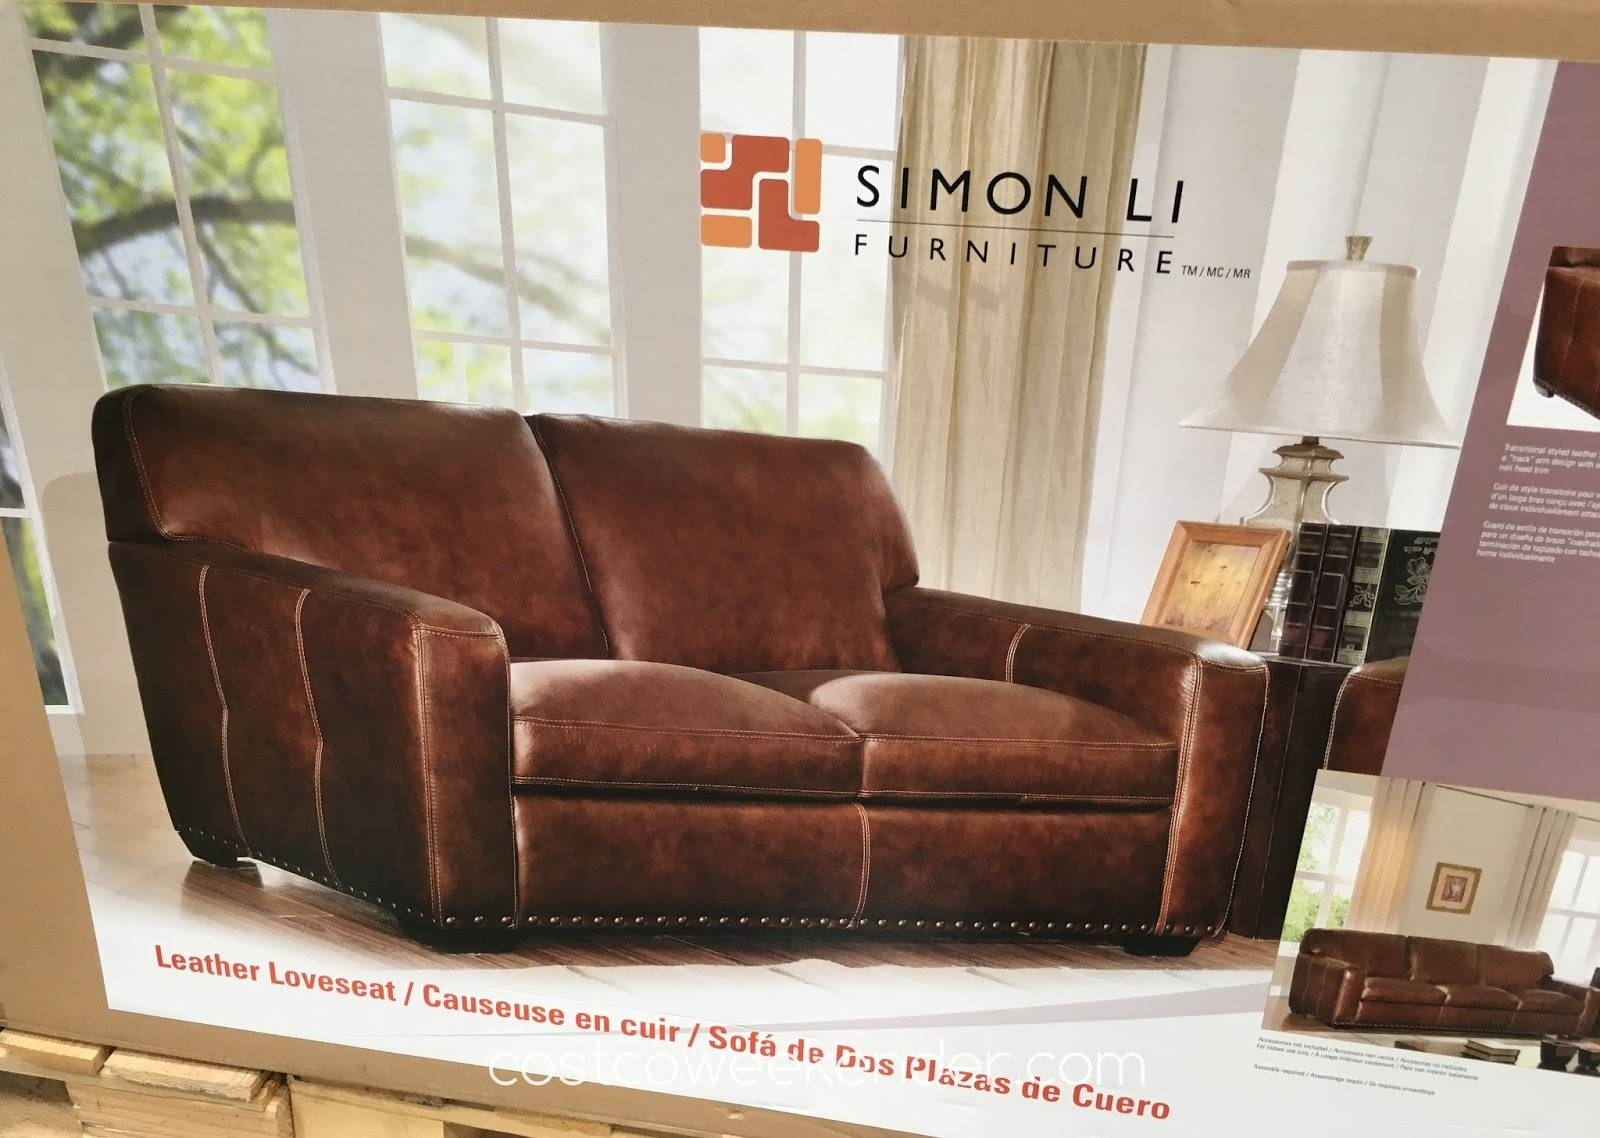 Simon Li Leather Loveseat | Costco Weekender pertaining to Simon Li Loveseats (Image 9 of 15)